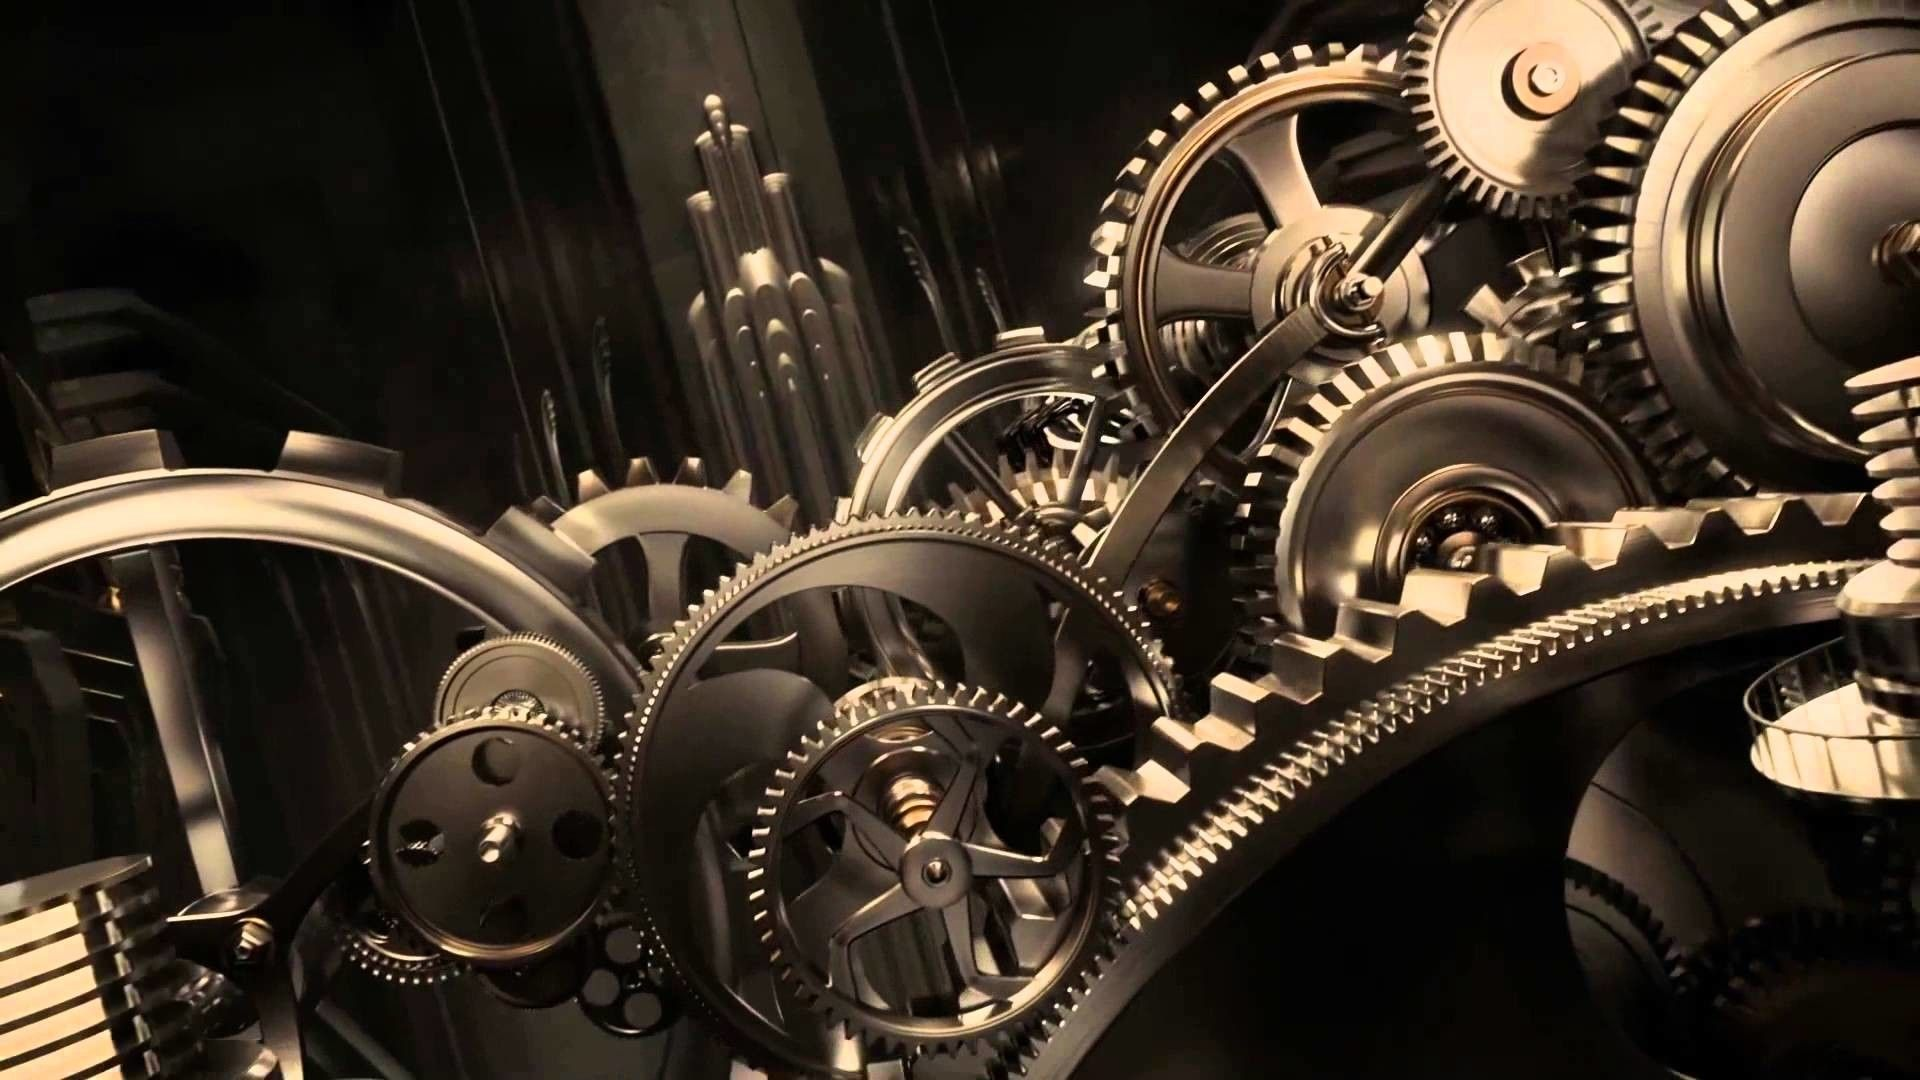 1920x1080 1920x1080 Mechanical Engineering Wallpaper #850818 Mechanical ...